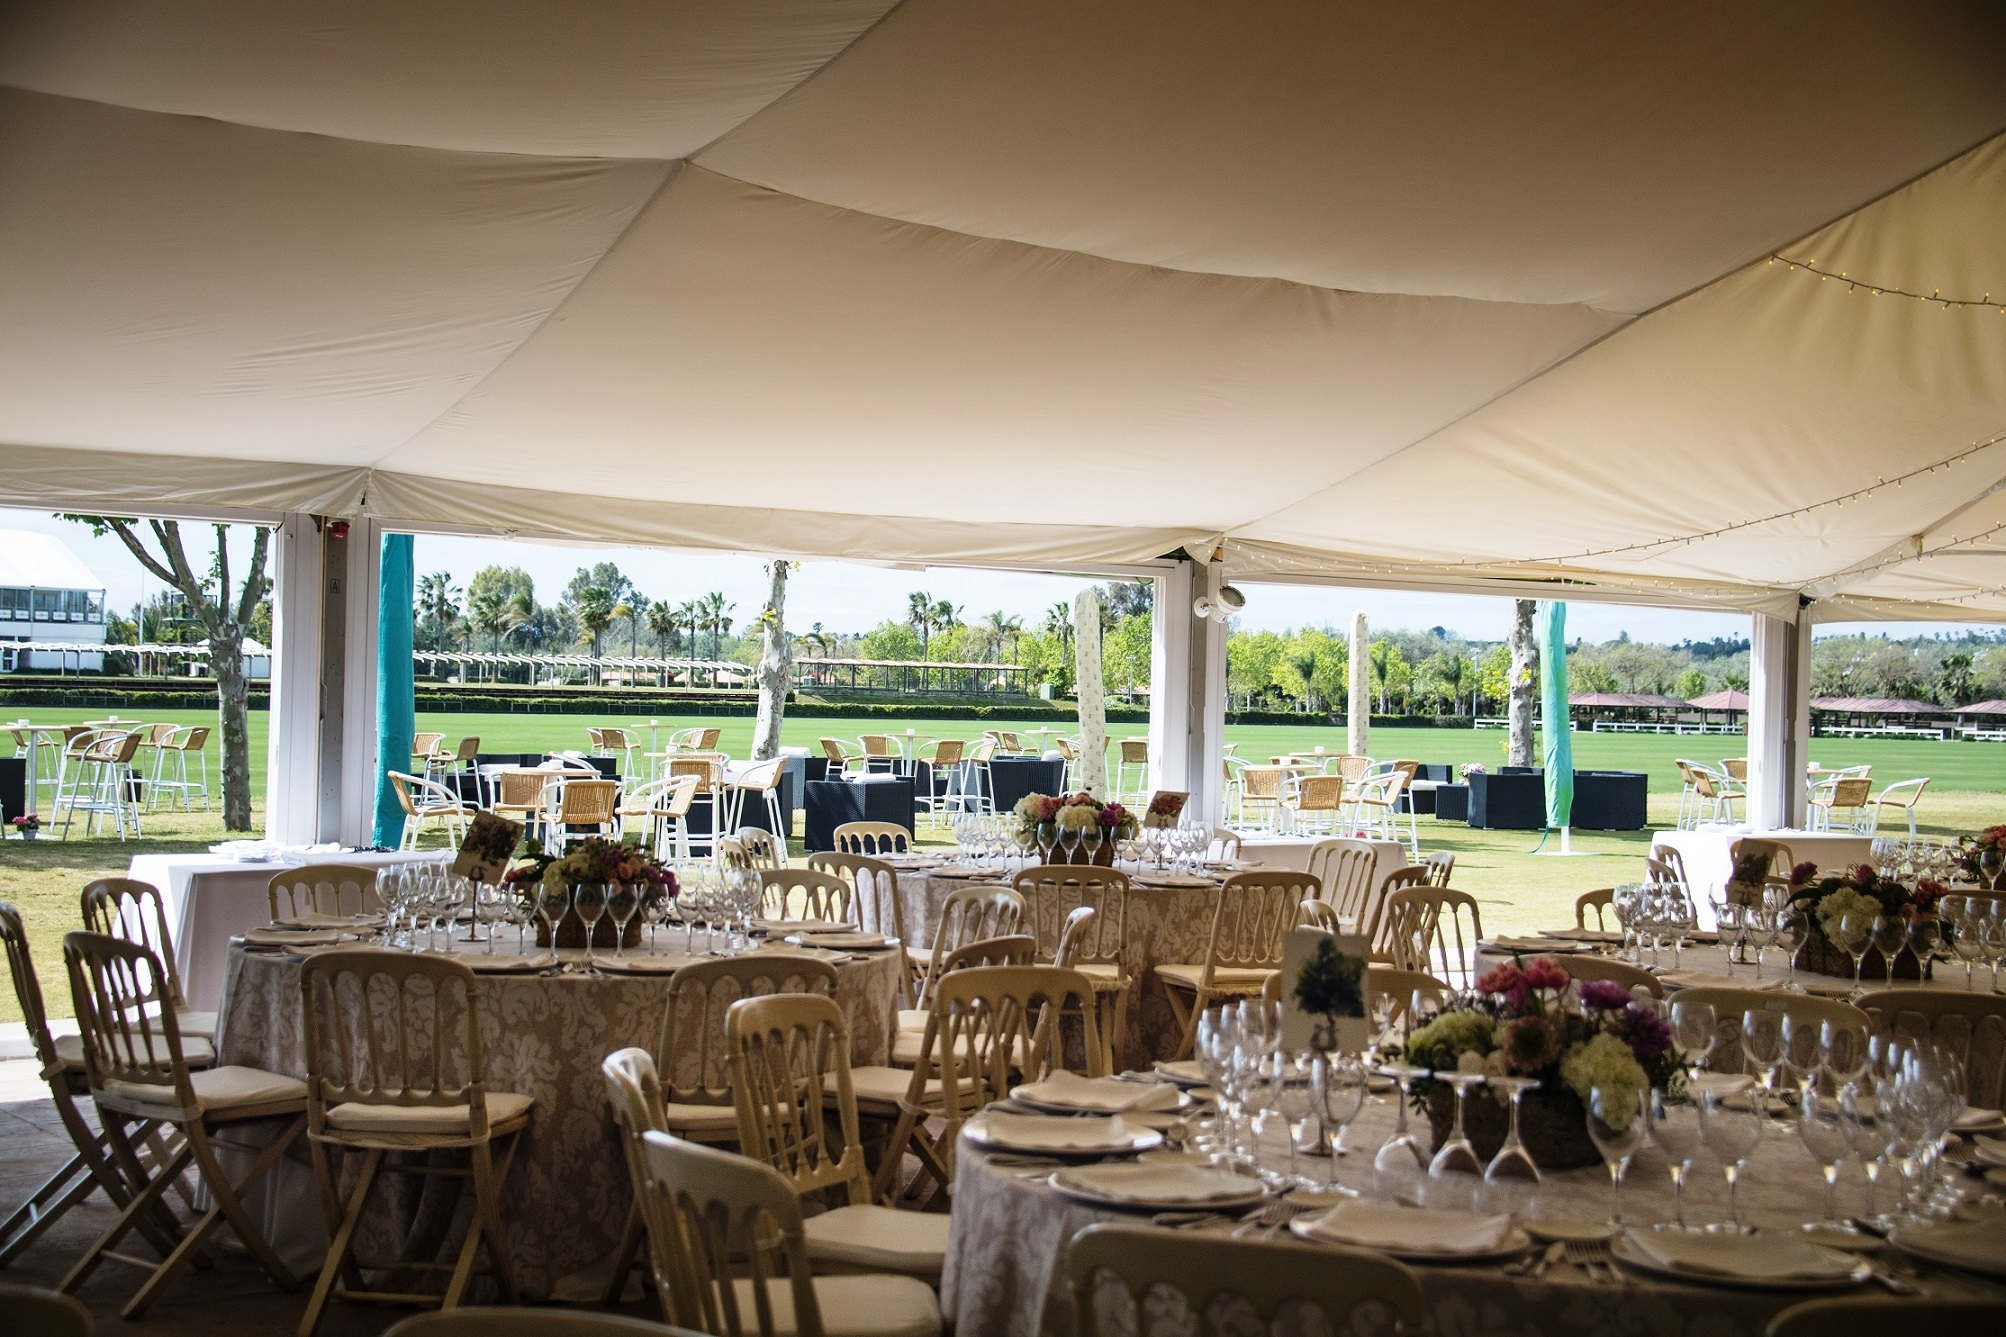 Boda Santa María Polo Club Sotogrande 4 - Snoopy Productions